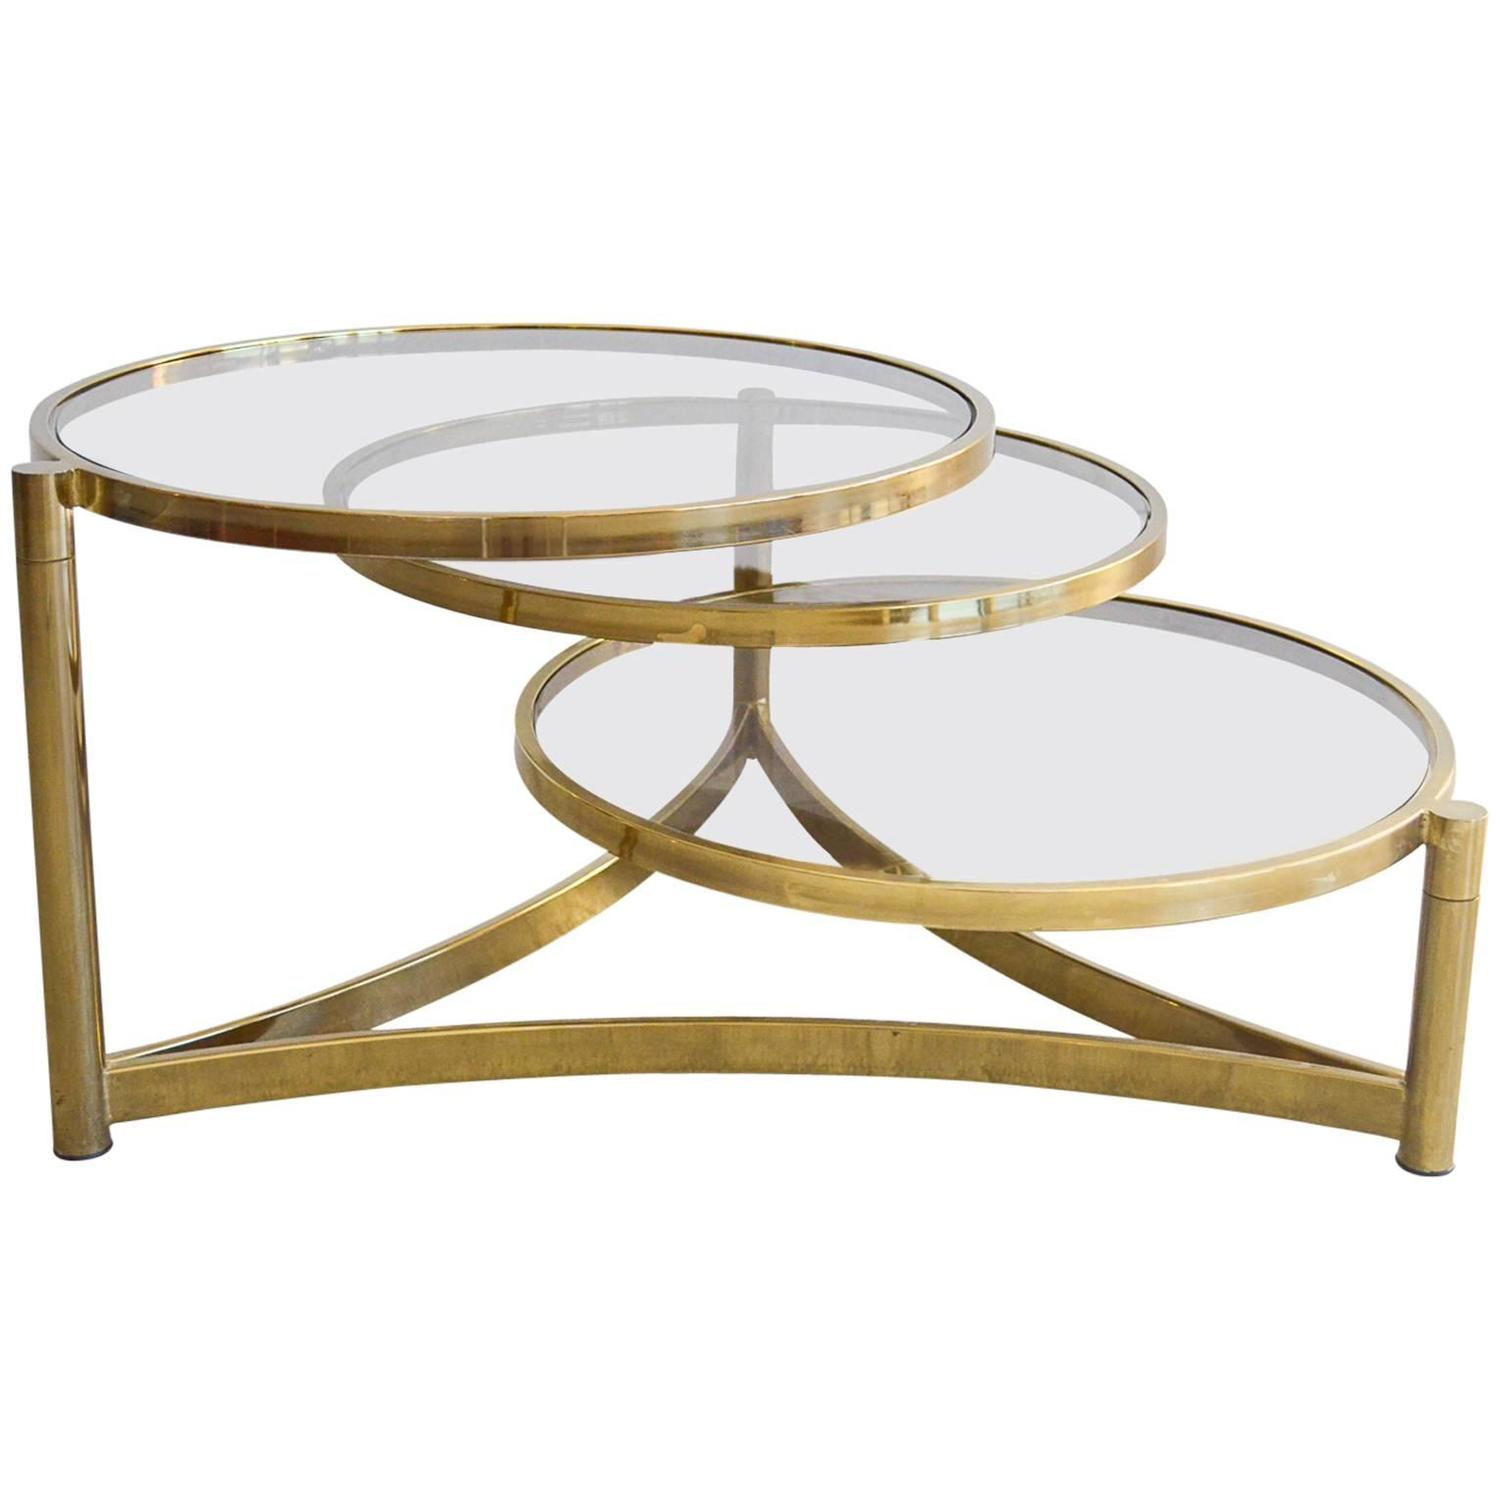 Milo baughman tri level brass and glass swivel coffee table at 1stdibs Brass round coffee table